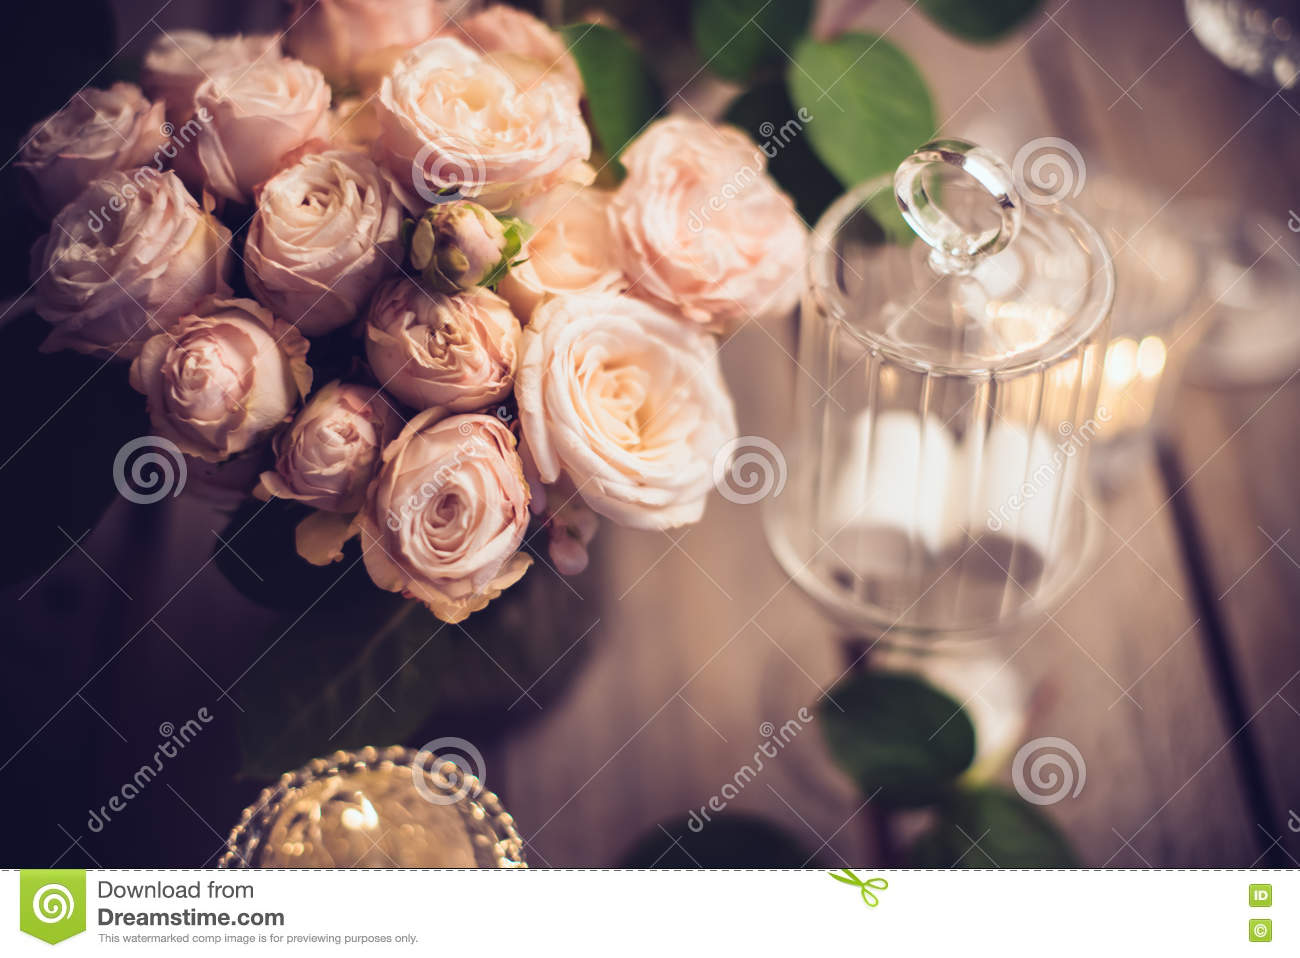 Elegant Vintage Wedding Table Decoration With Roses And